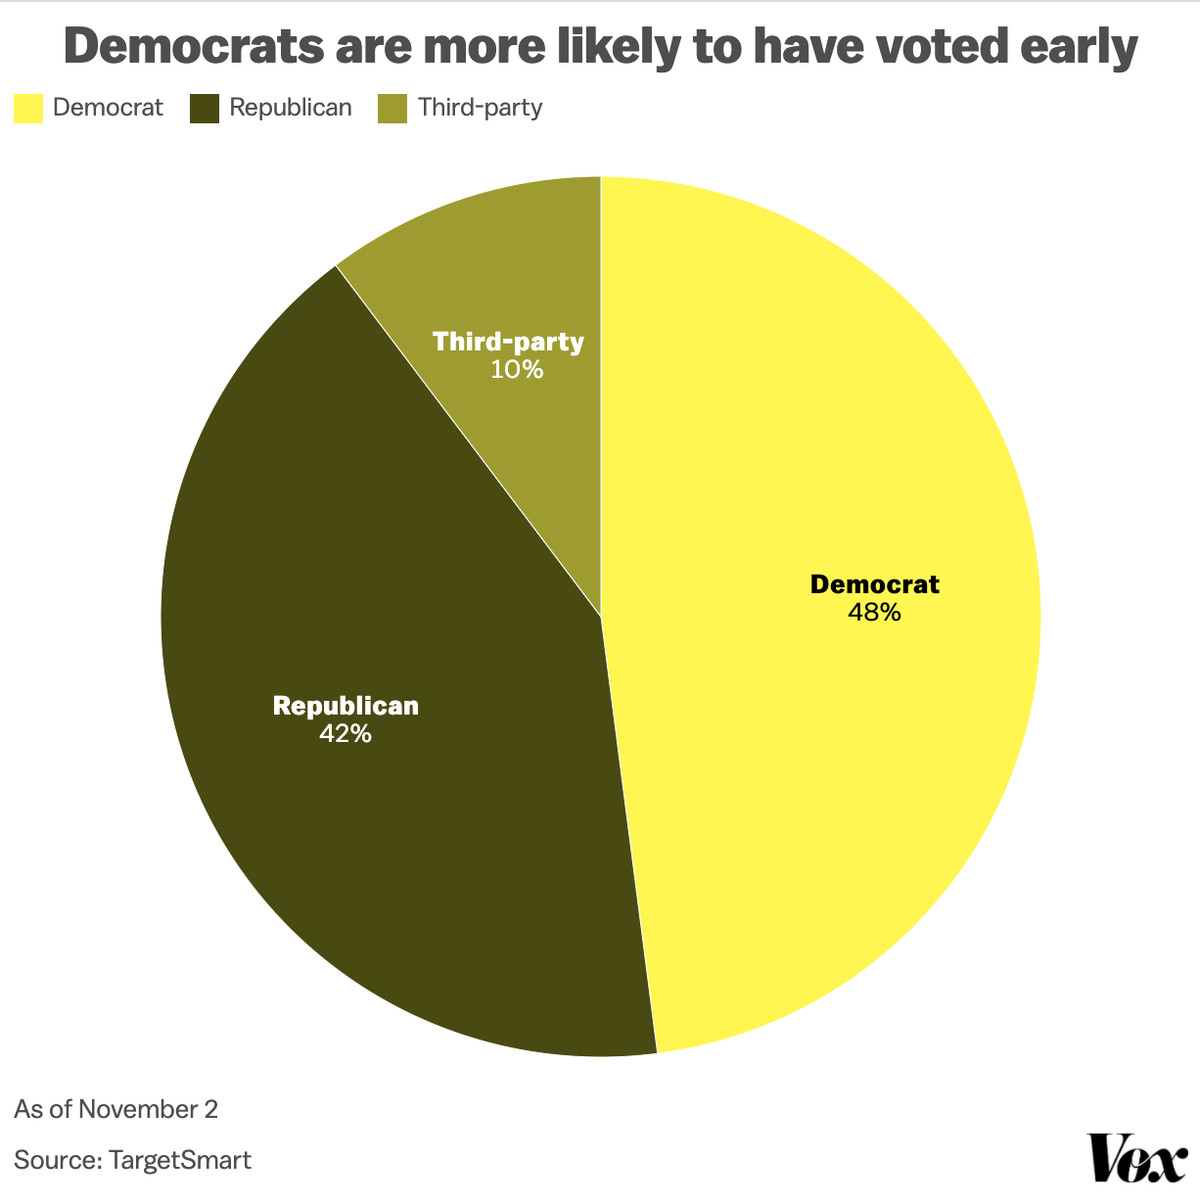 The graph shows that Democrats voted early.